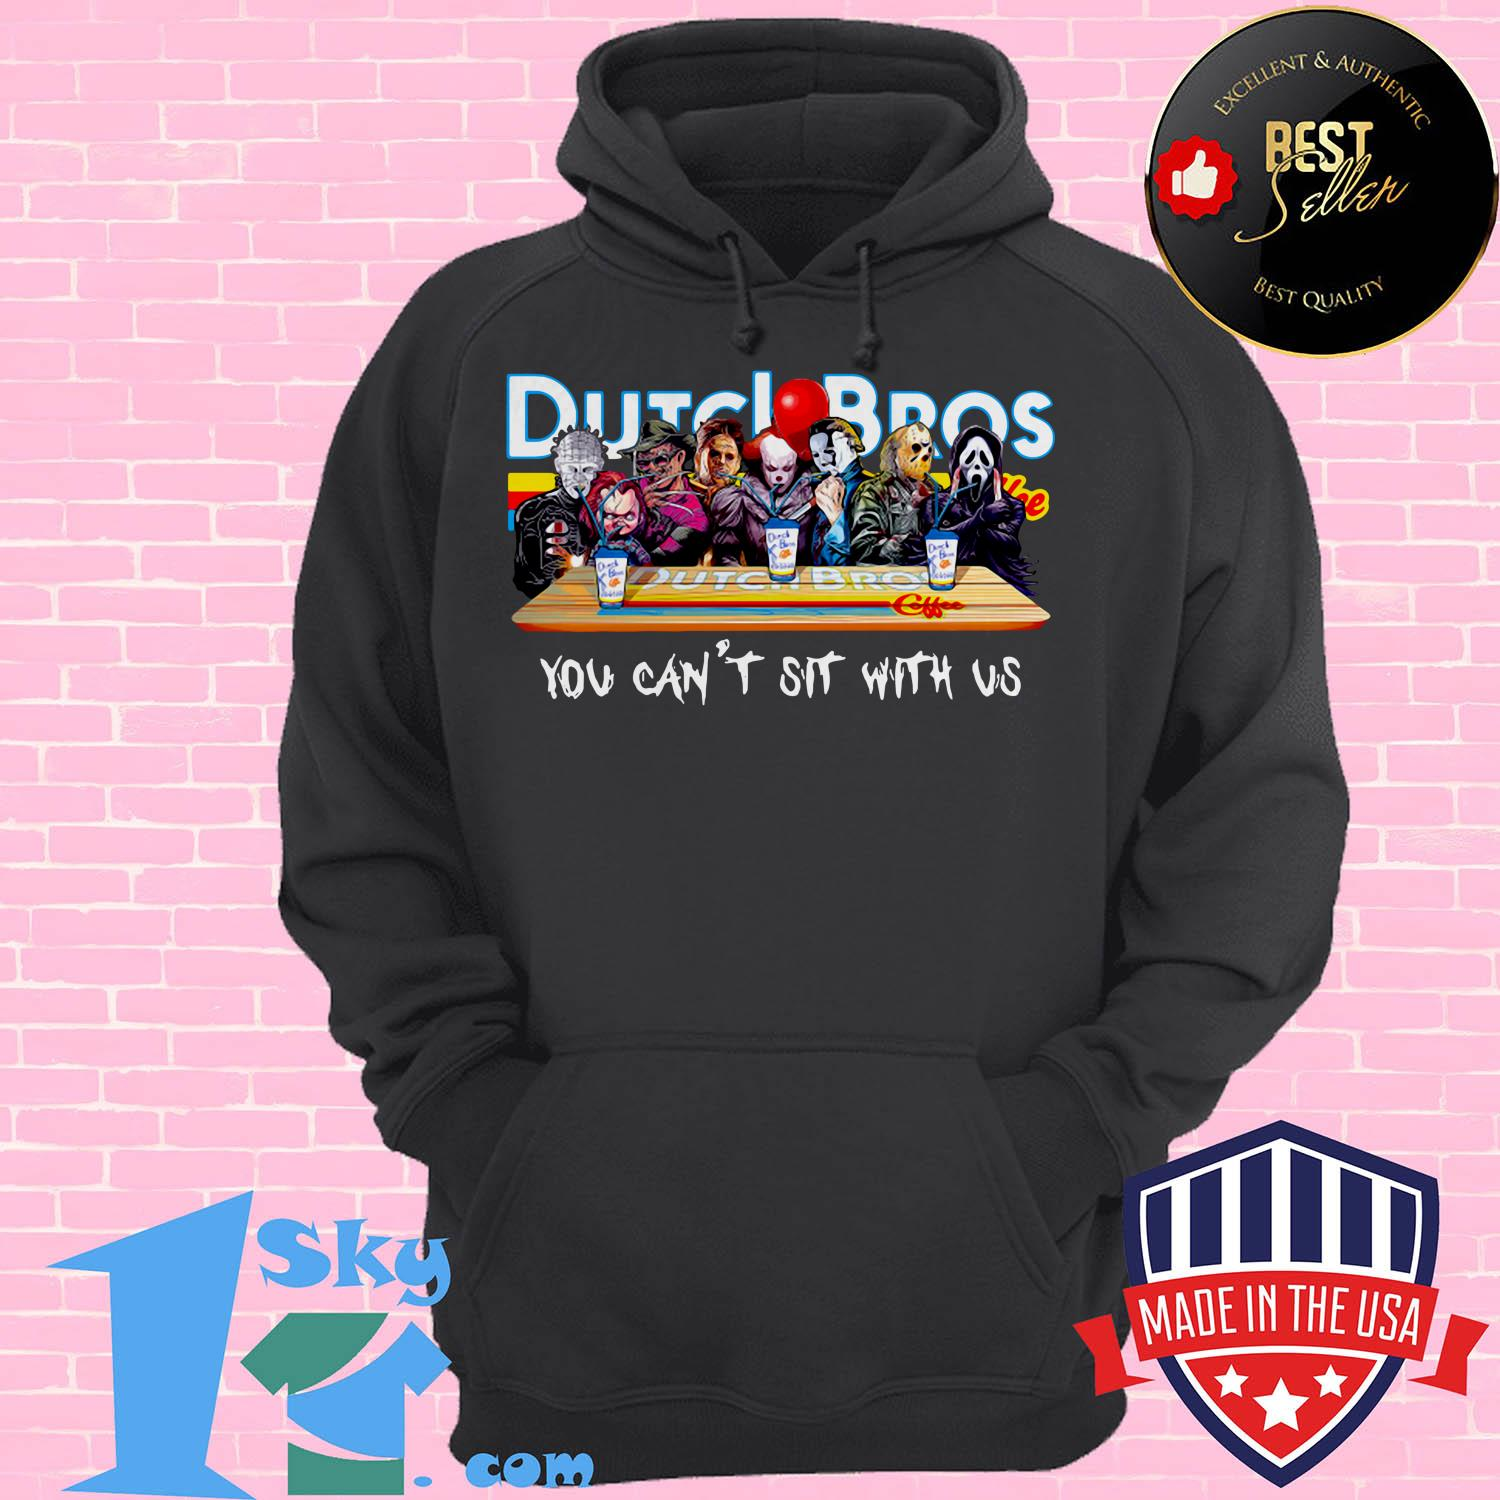 dutch bros coffee horror character movie you cant sit with us hoodie - Dutch Bros Coffee Horror Character movie You Can't Sit with Us shirt